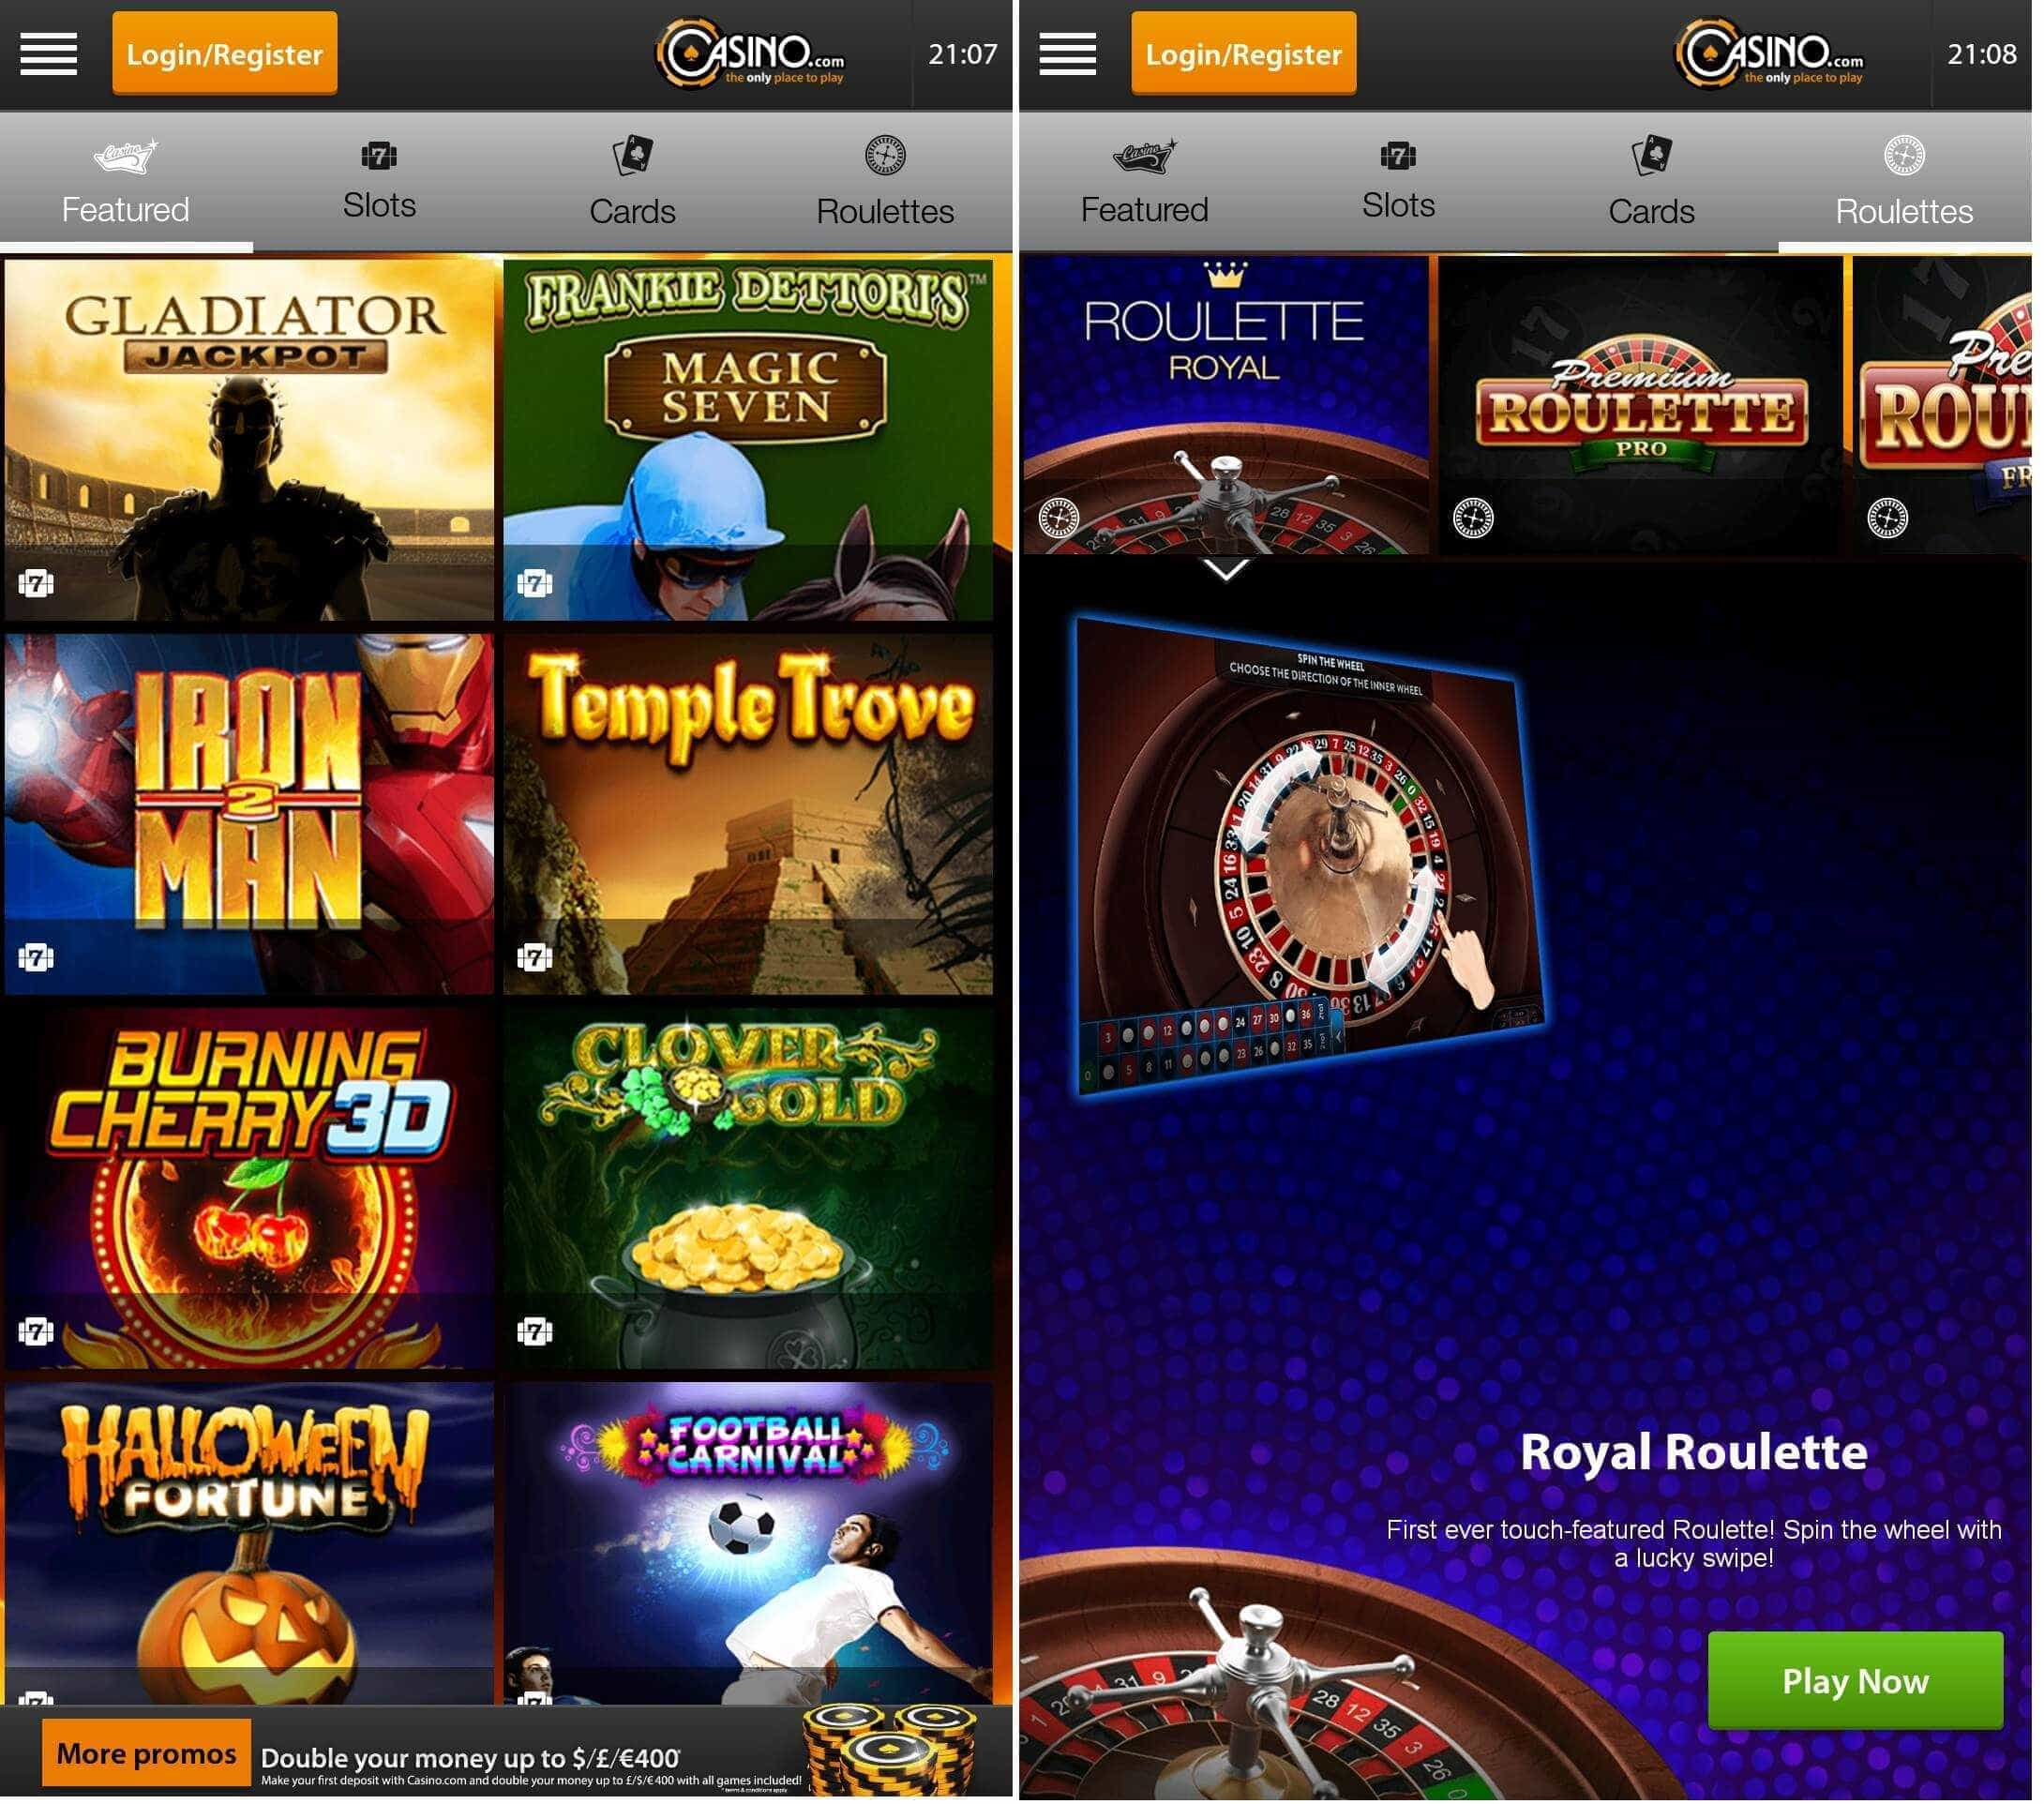 Casino.com Android app